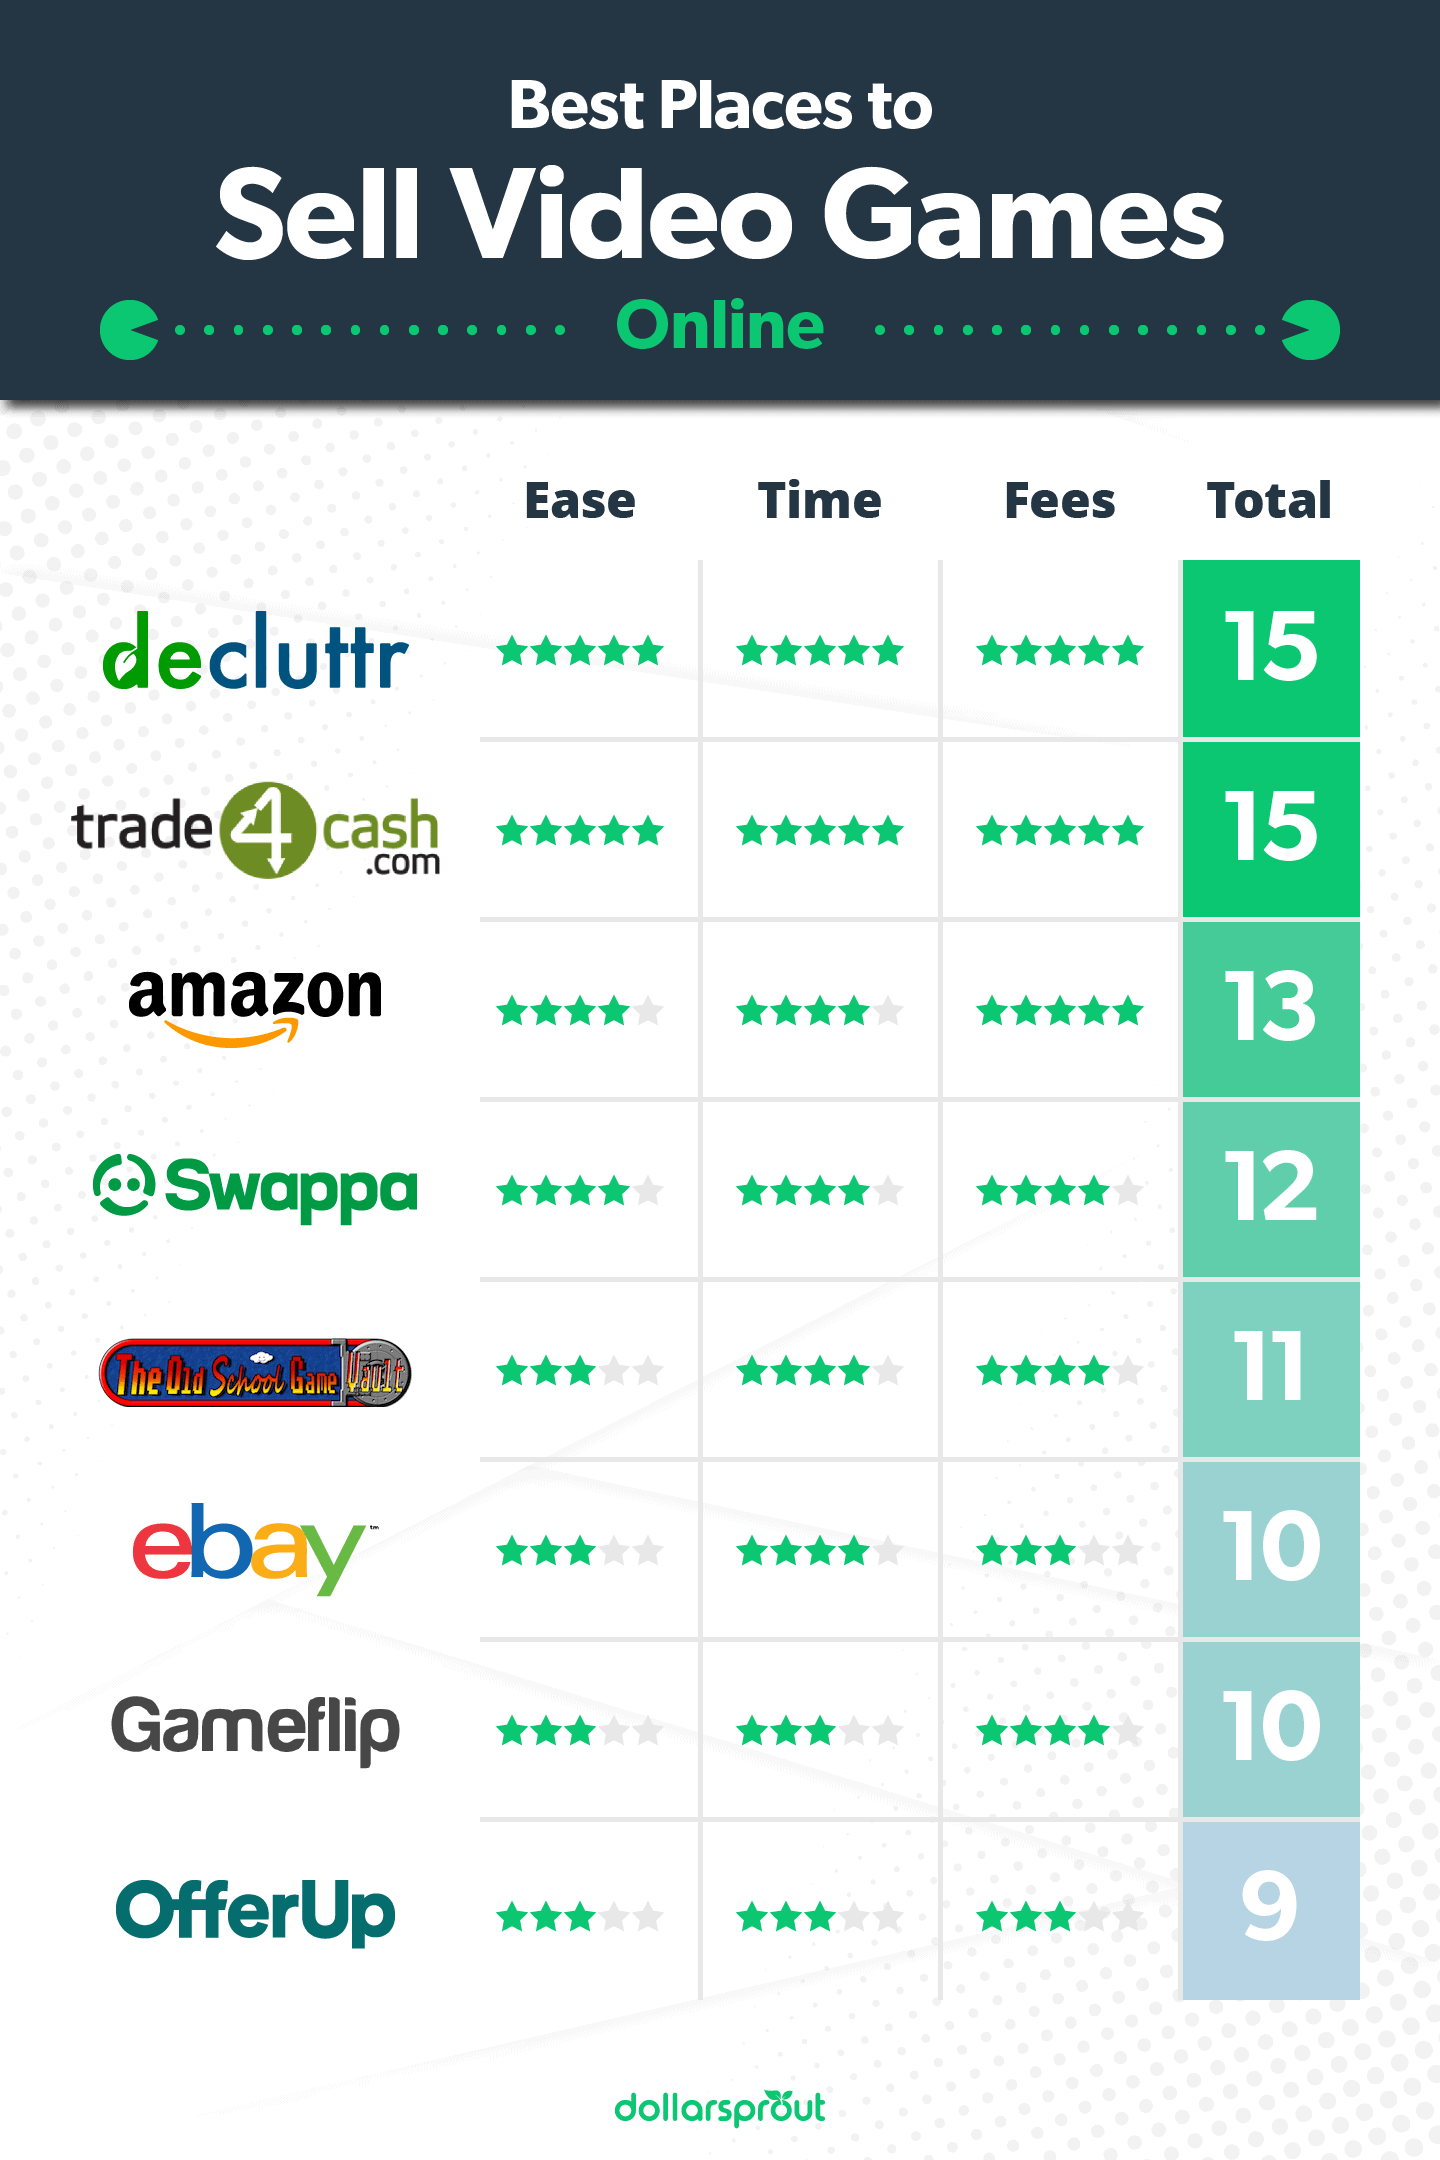 Best Places to Sell Video Games Online